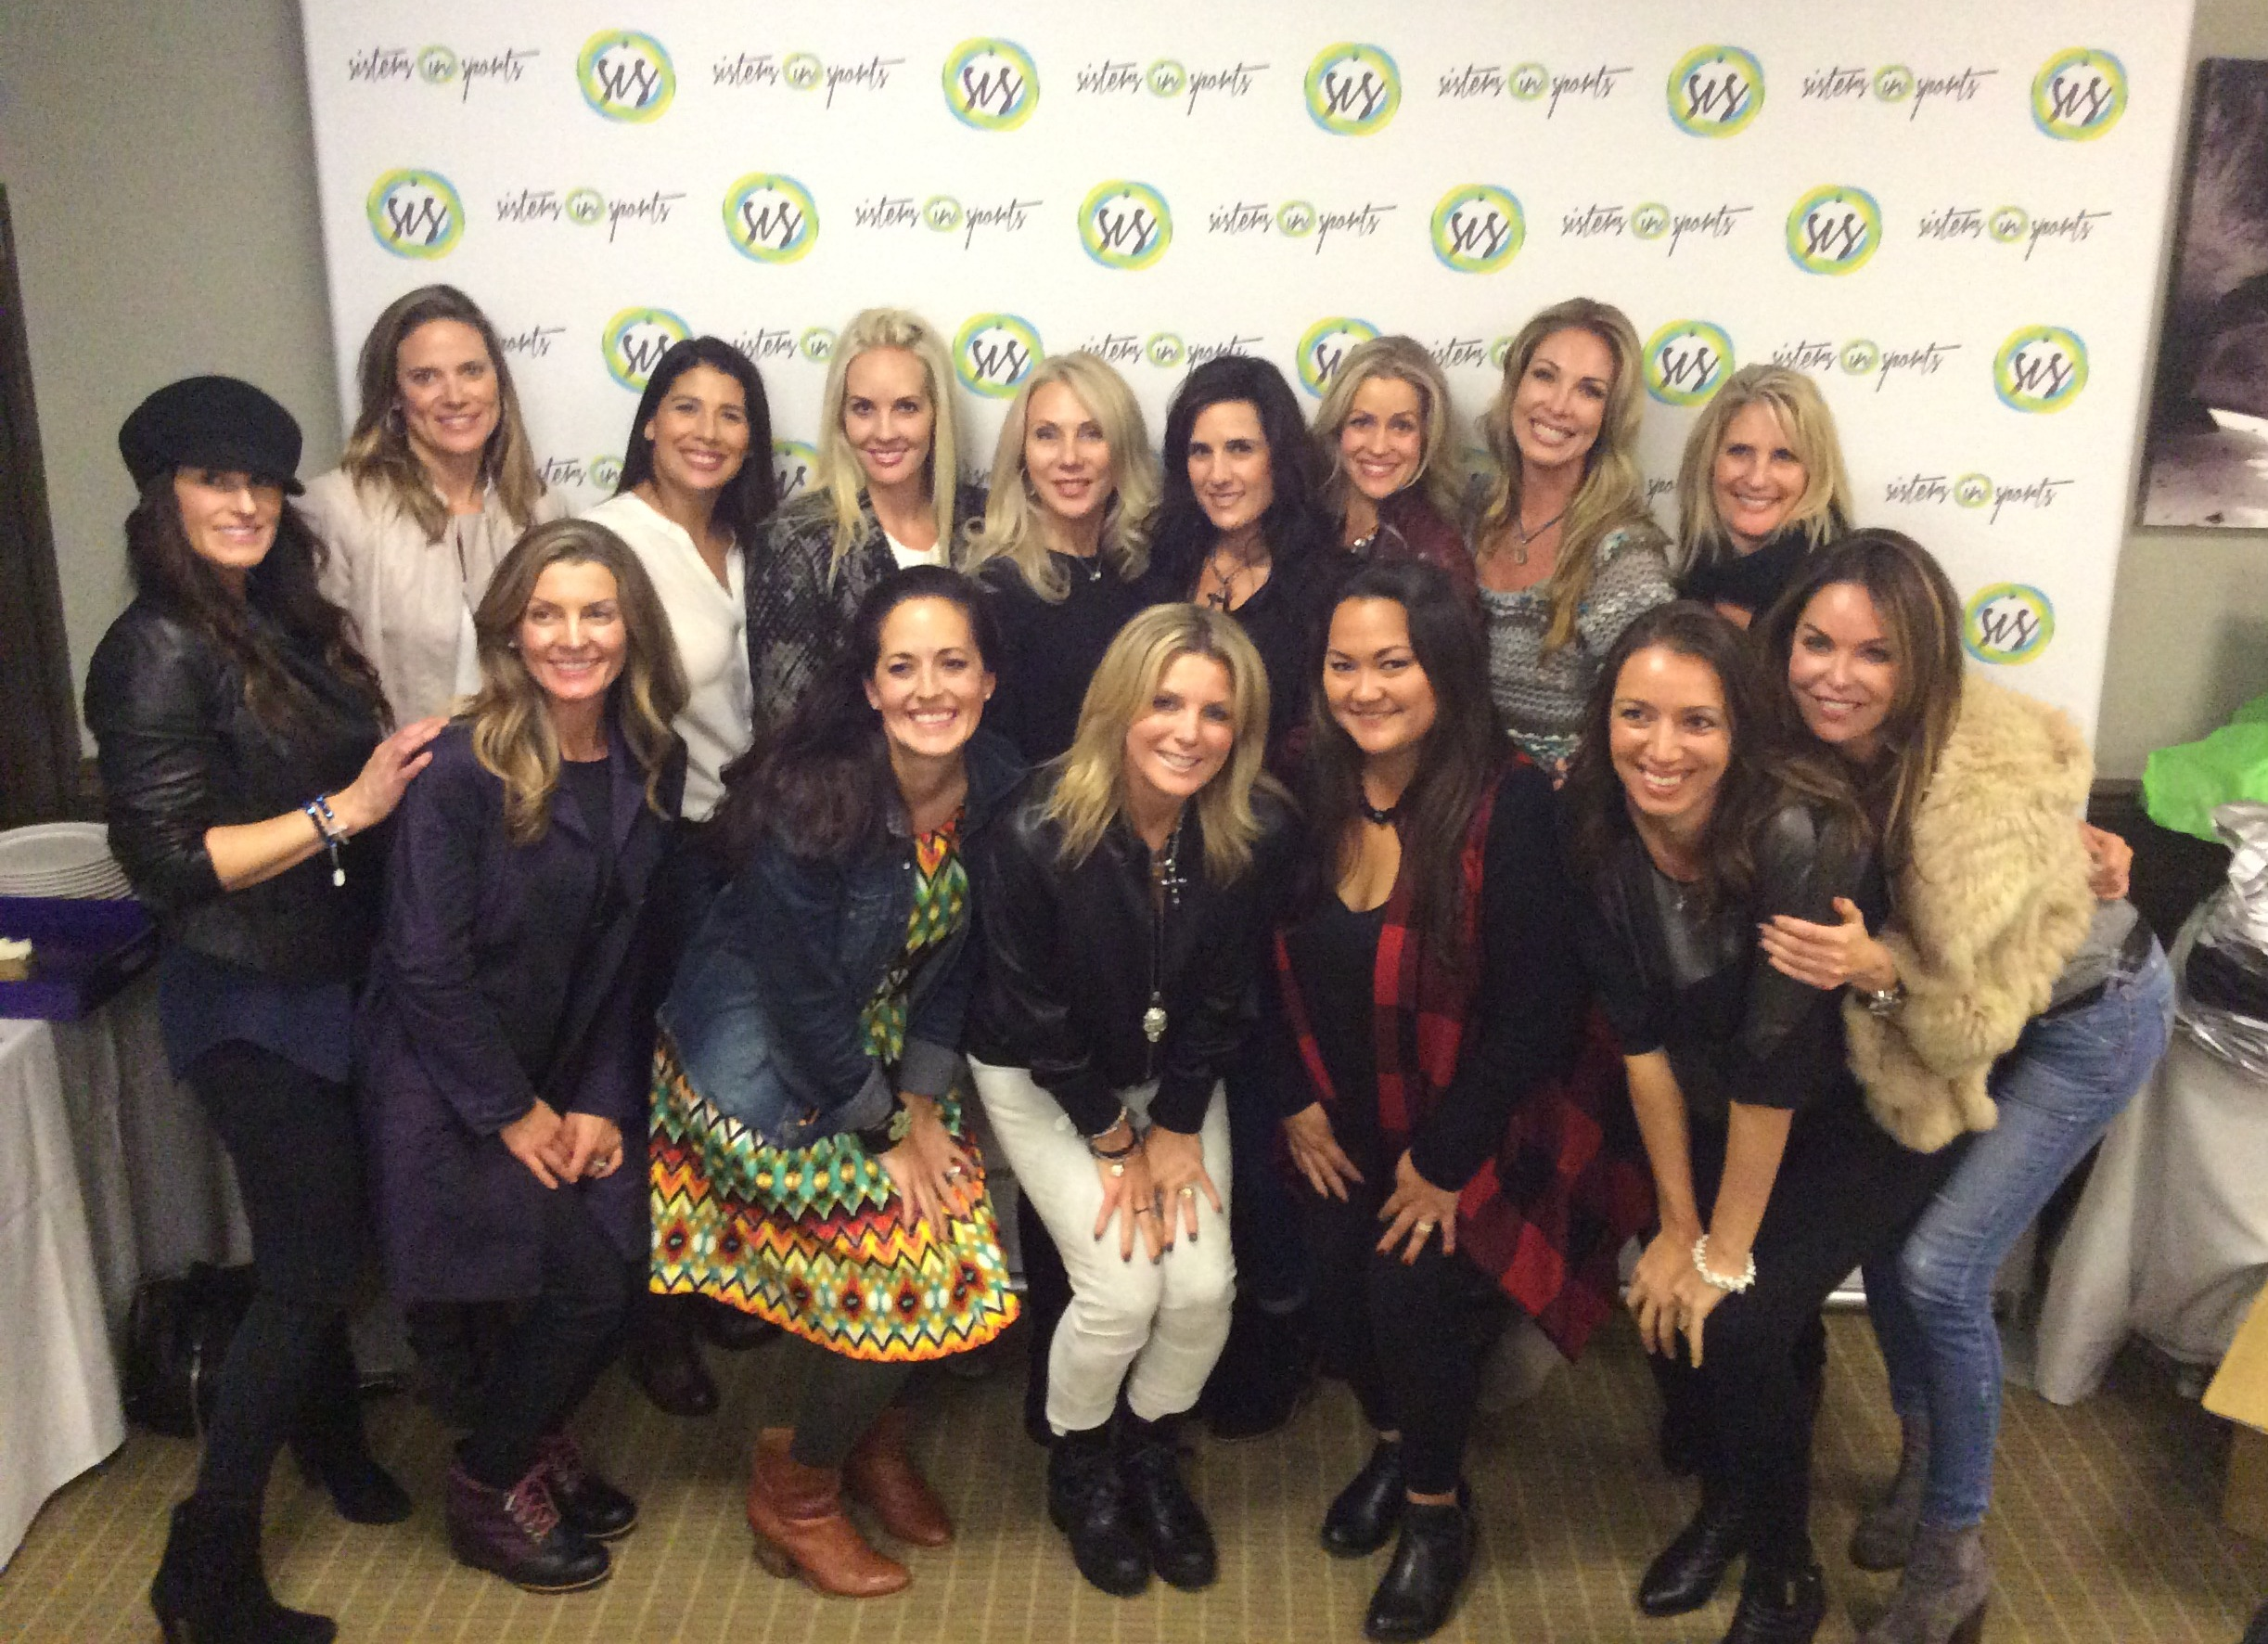 Moyer and ladies at Sisters in Sports event